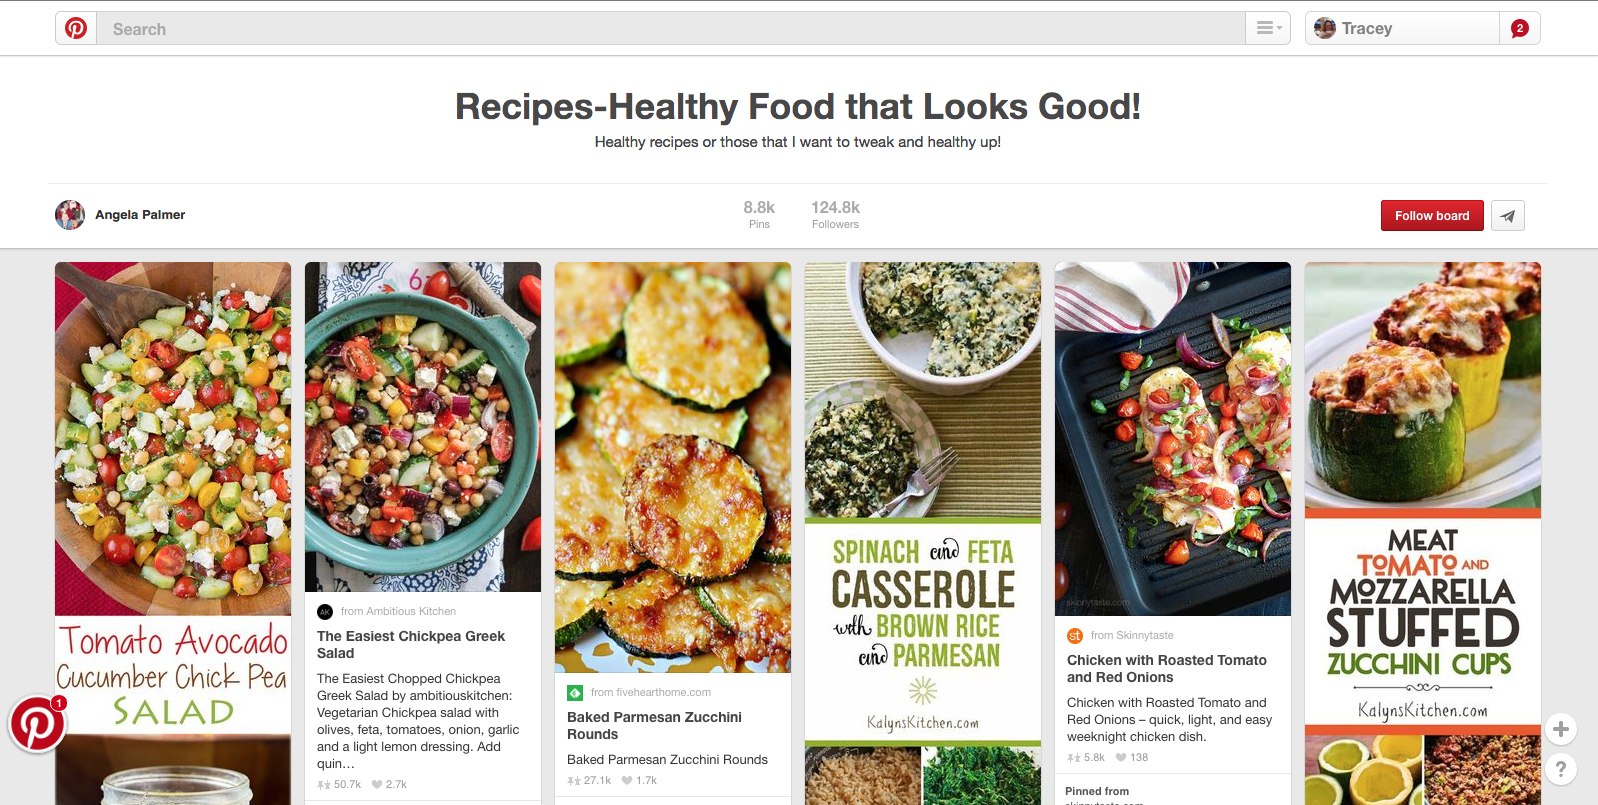 Follow These Boards On Pinterest For Healthy Living Recipes And Ideas.